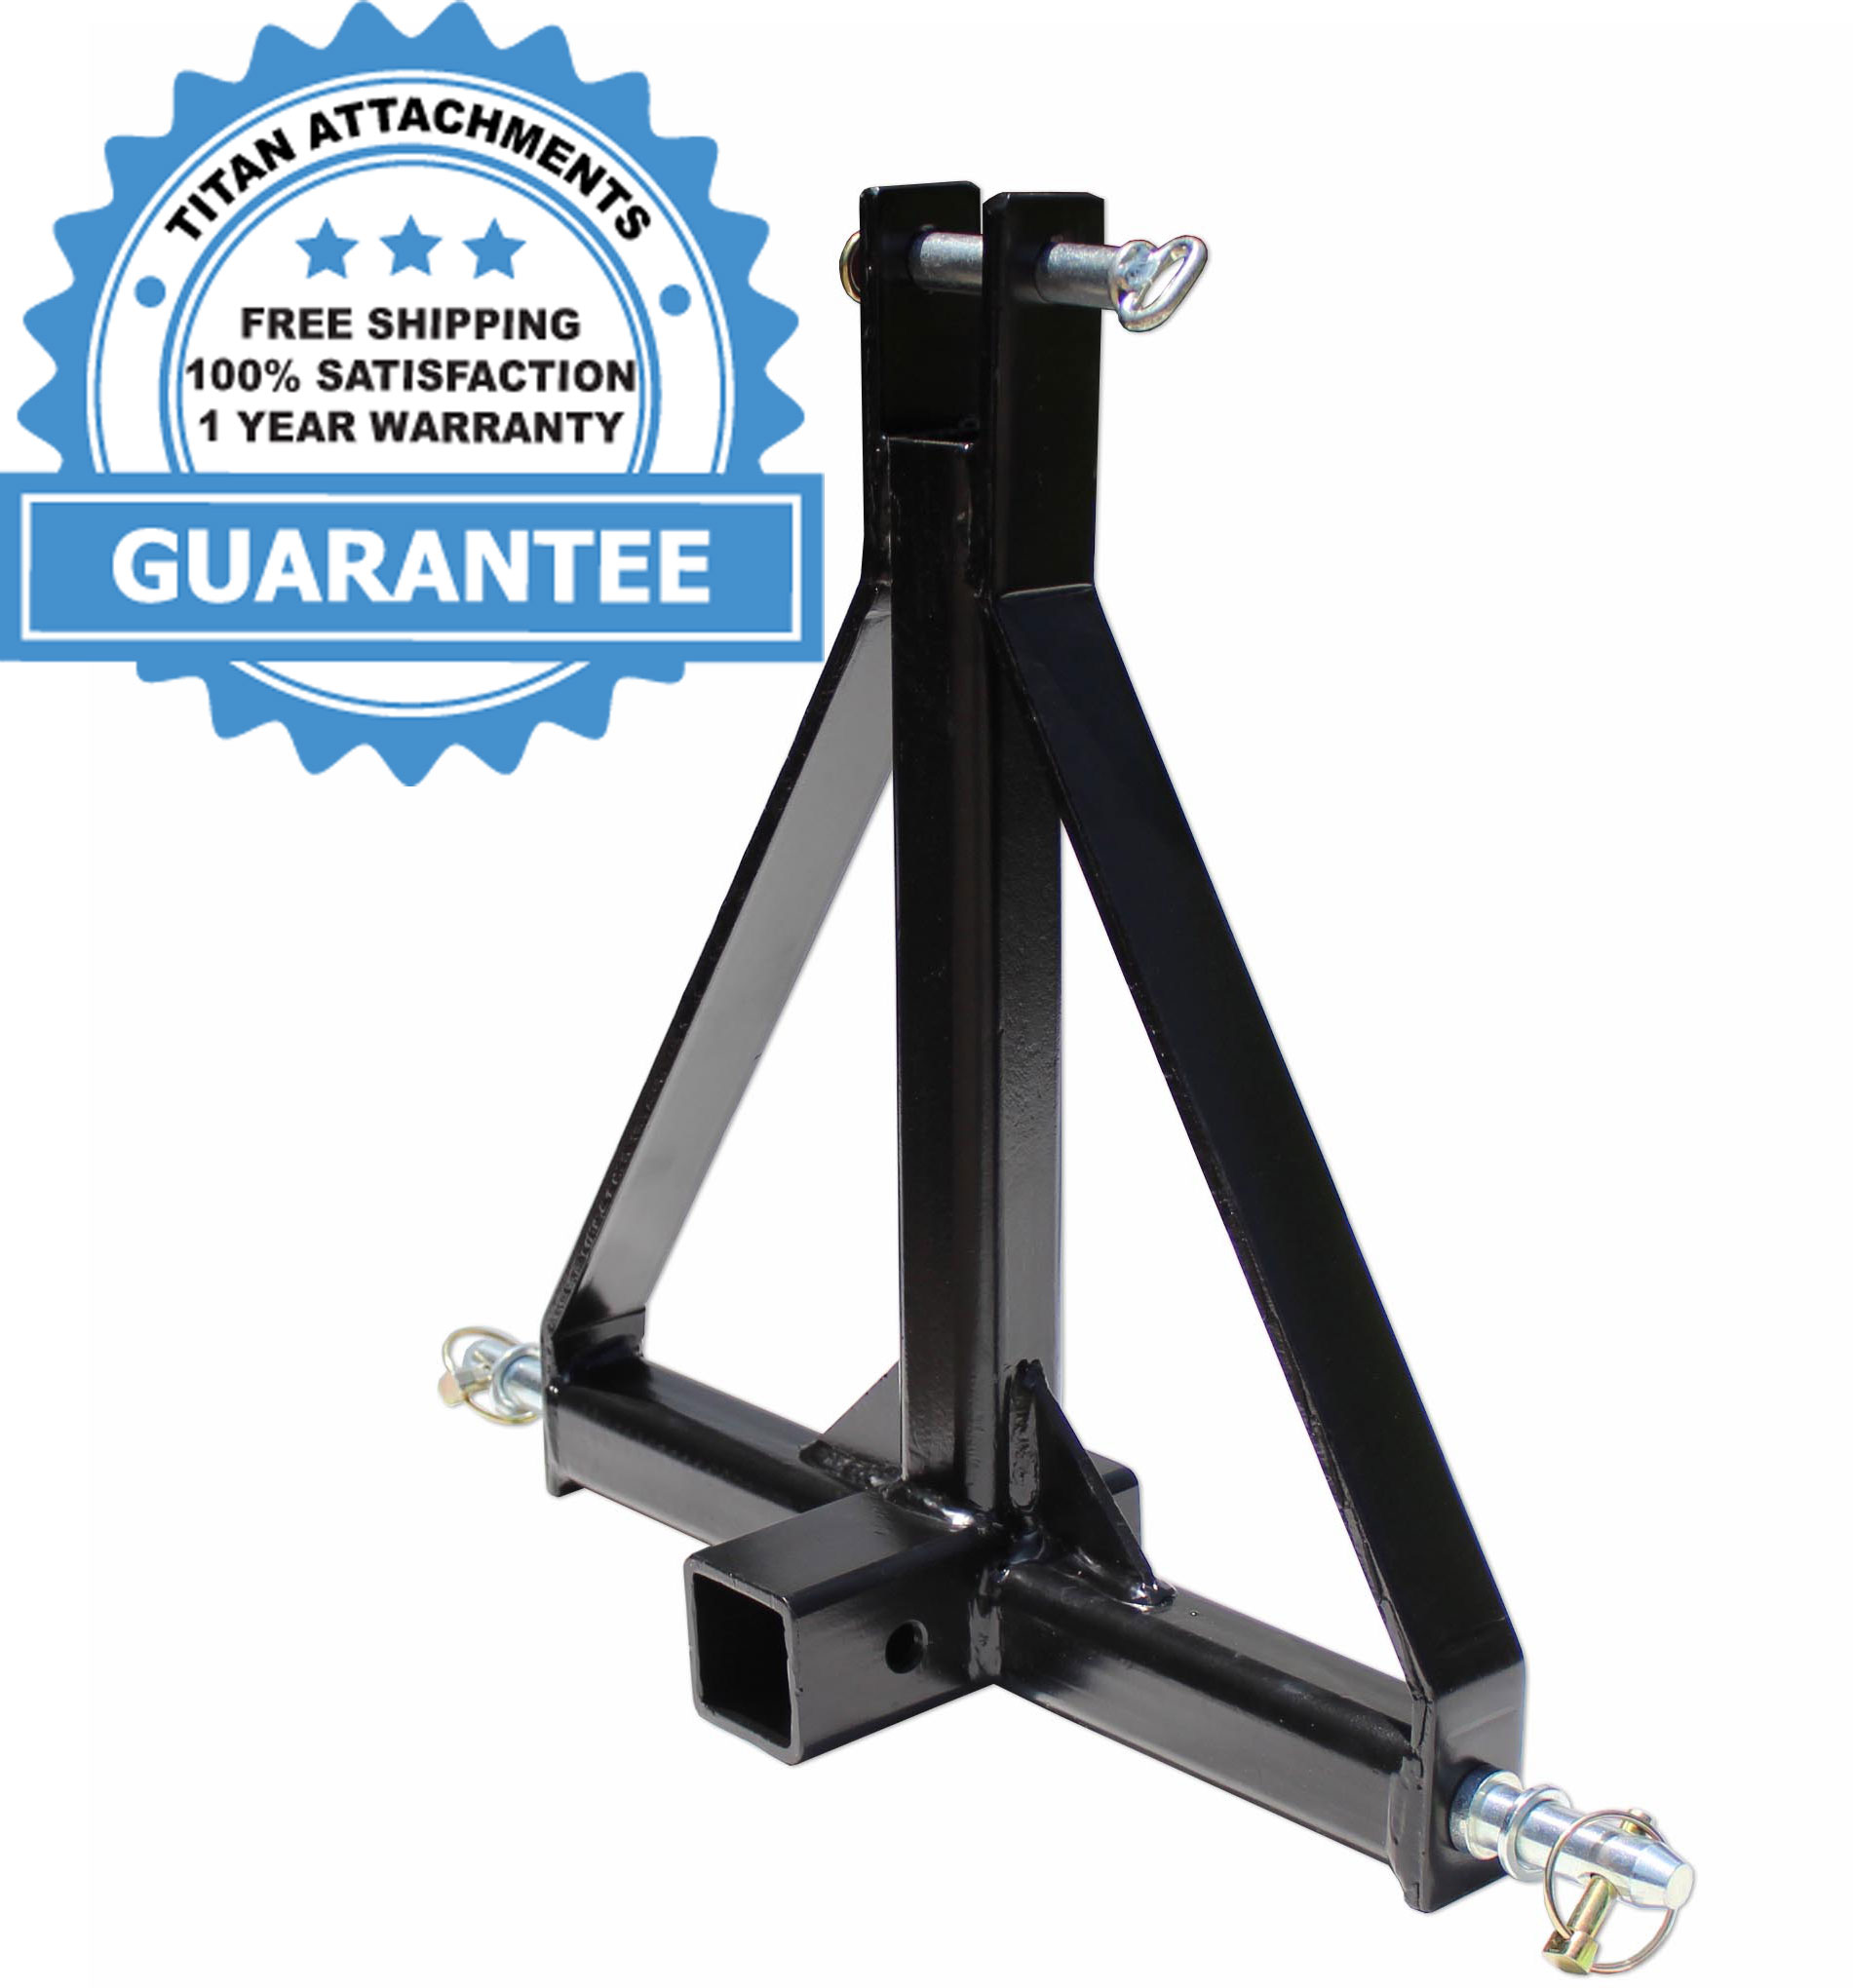 Sulythw 3 Point Trailer Hitch Adapter Category 1 Drawbar Tractor Trailer 2 Hitch Receiver 3 Point Attachment